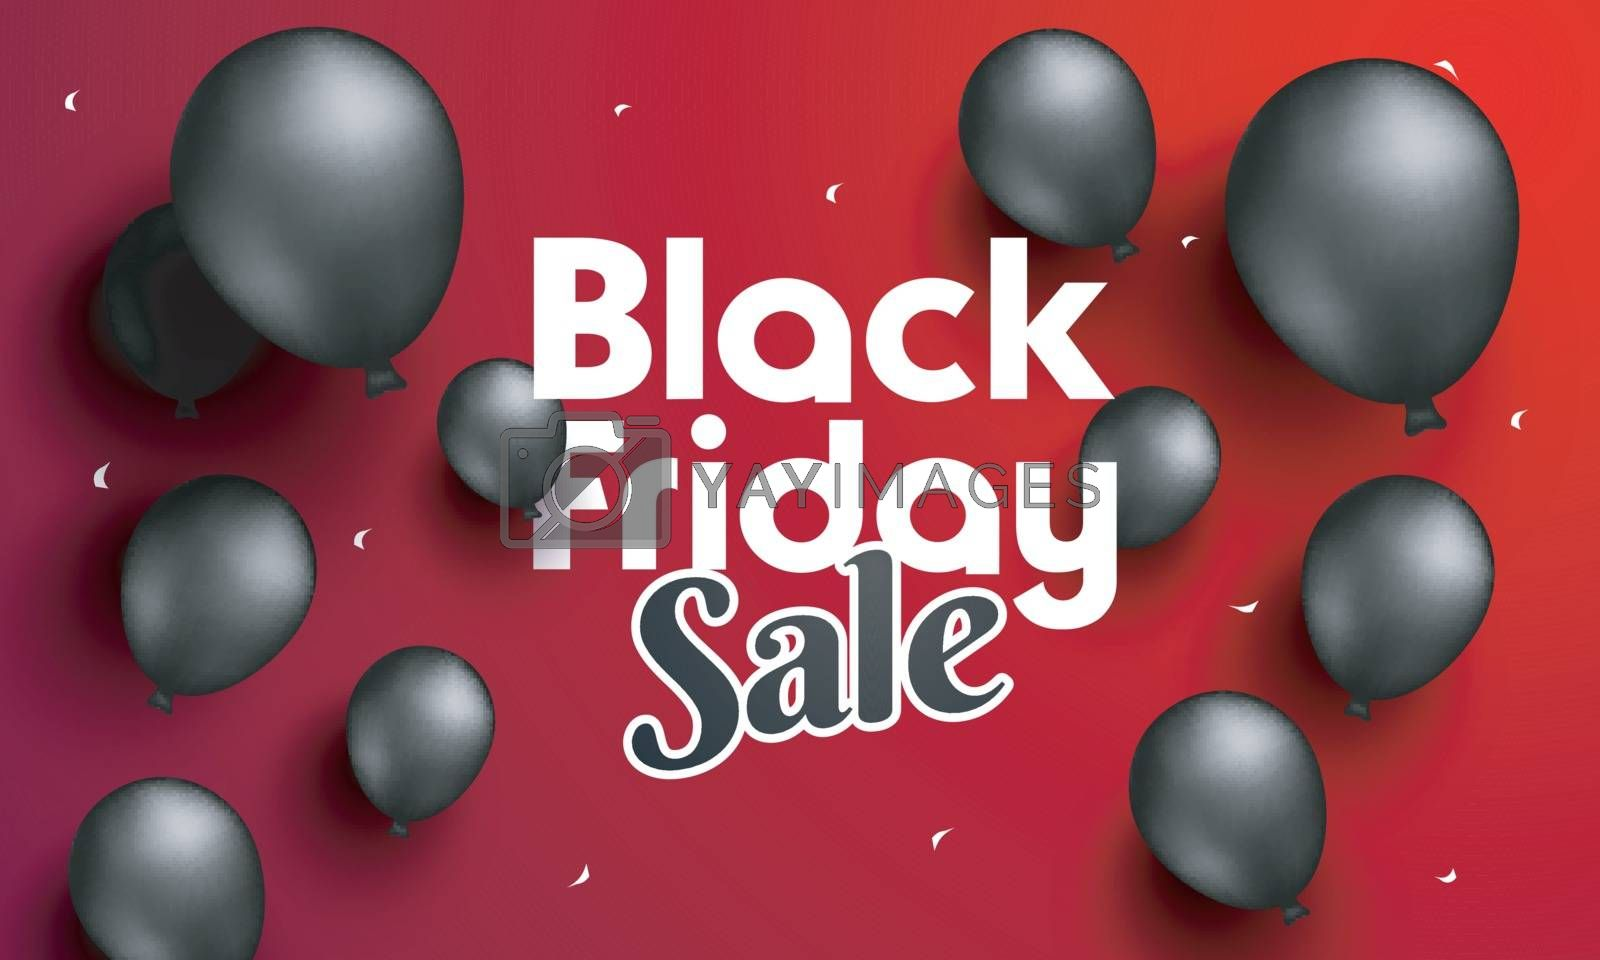 Black Friday Sale poster or banner design, realistic black balloons decoration on red background for advertisement concept.